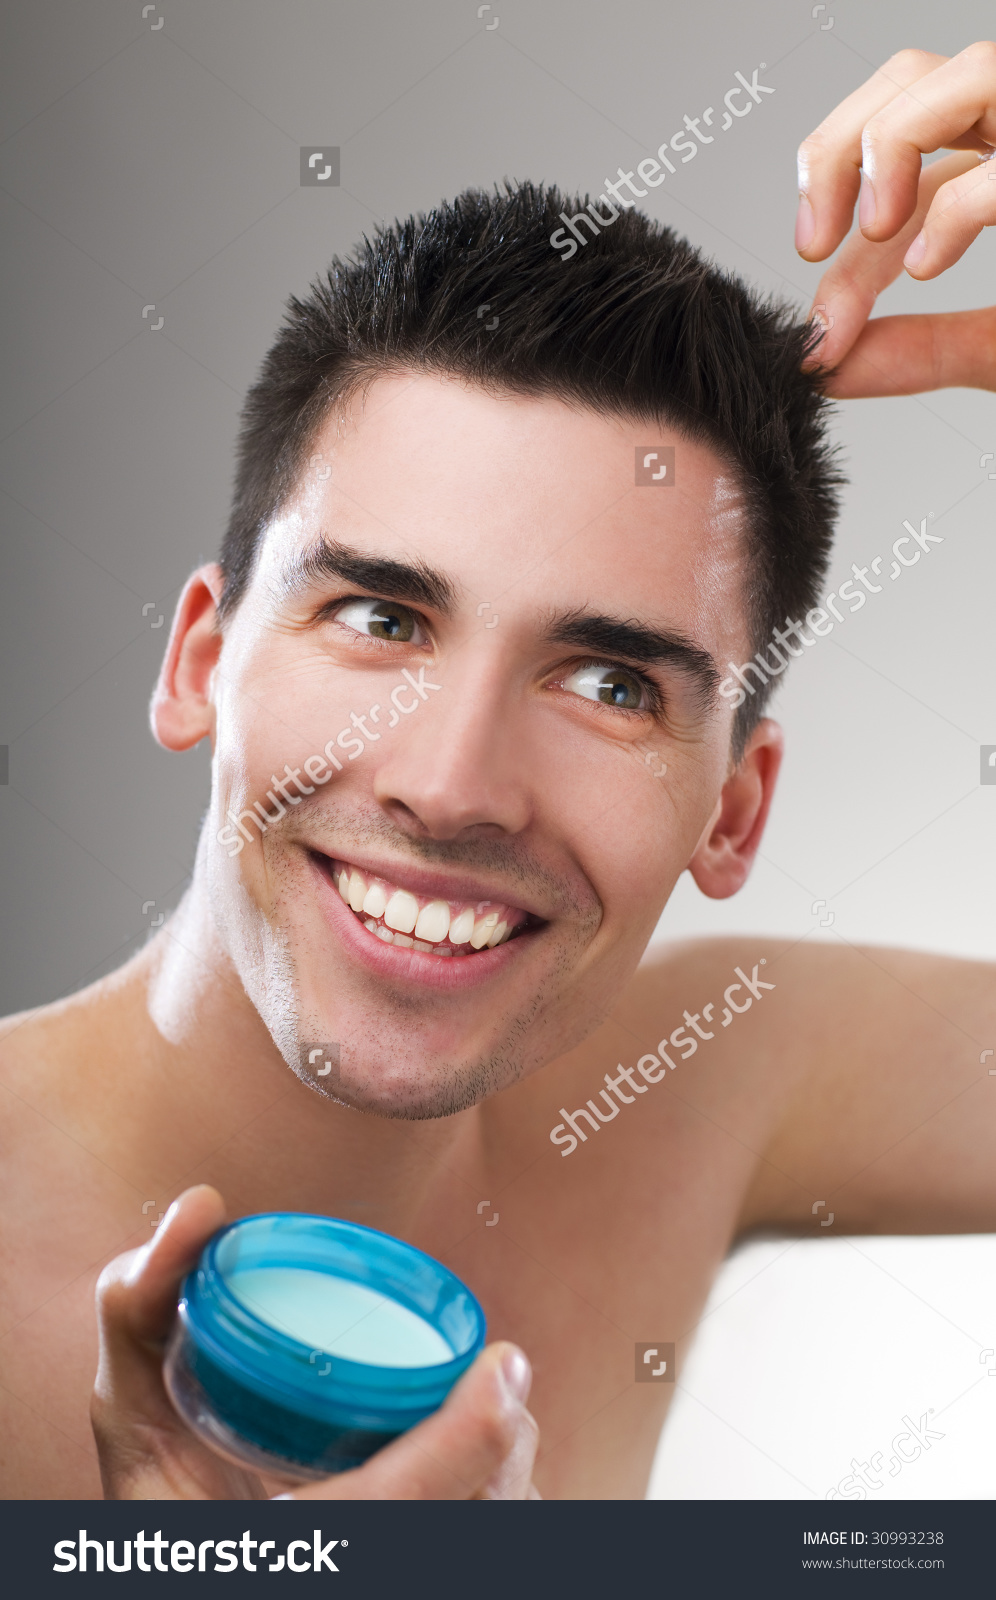 Young Handsome Man Applying Hair Gel Stock Photo 30993238.